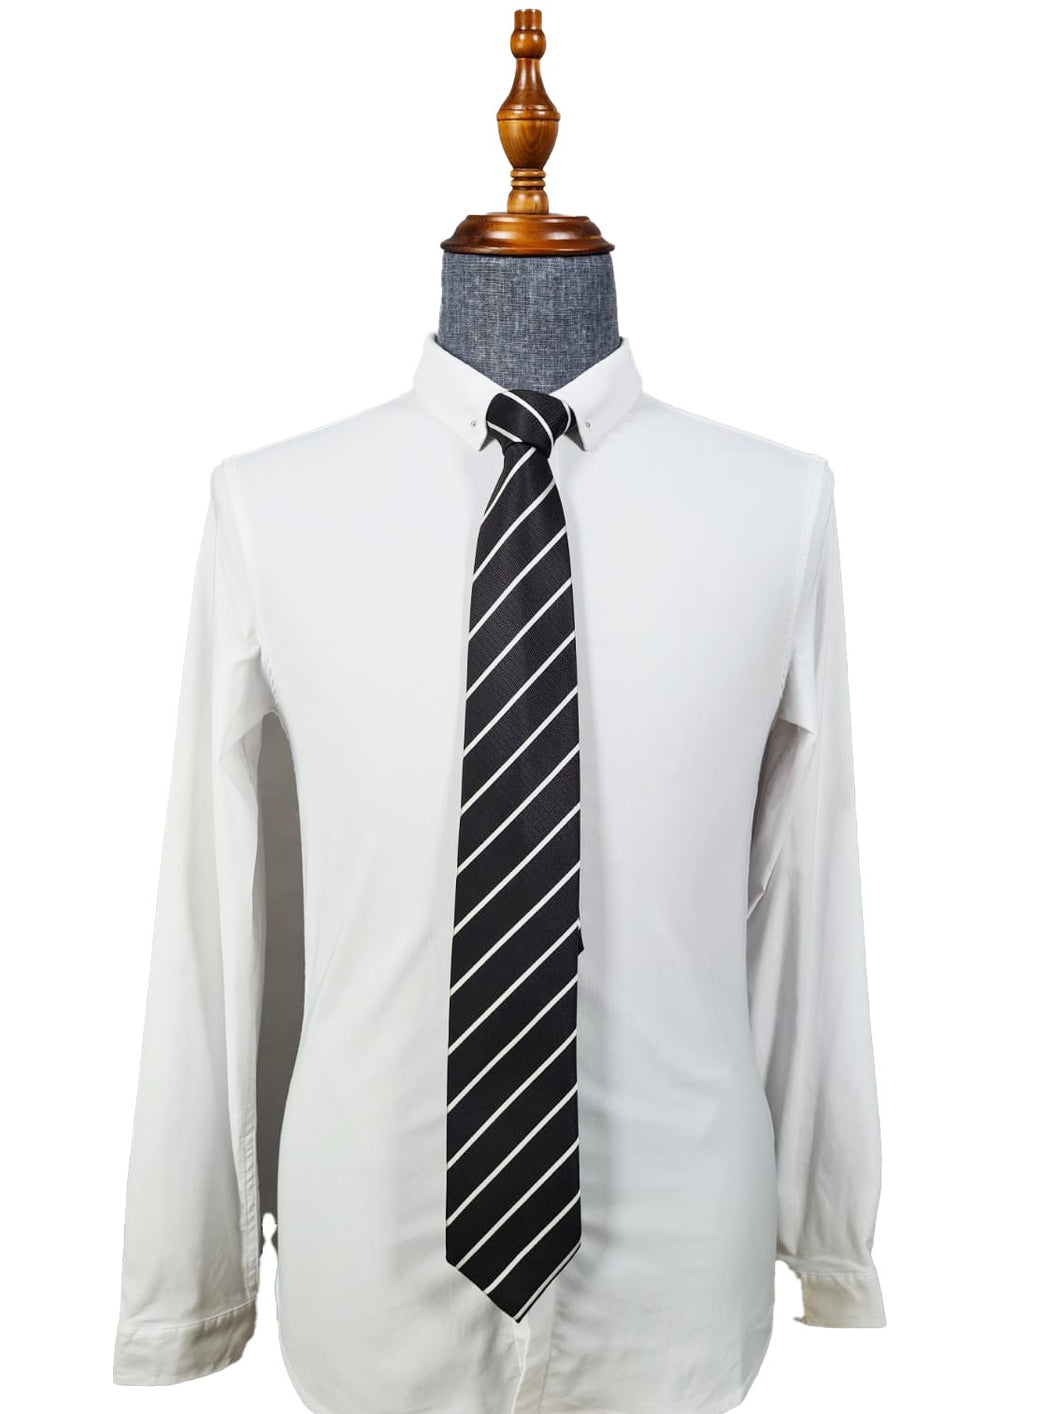 Classic Tie 012 (Black-striped)